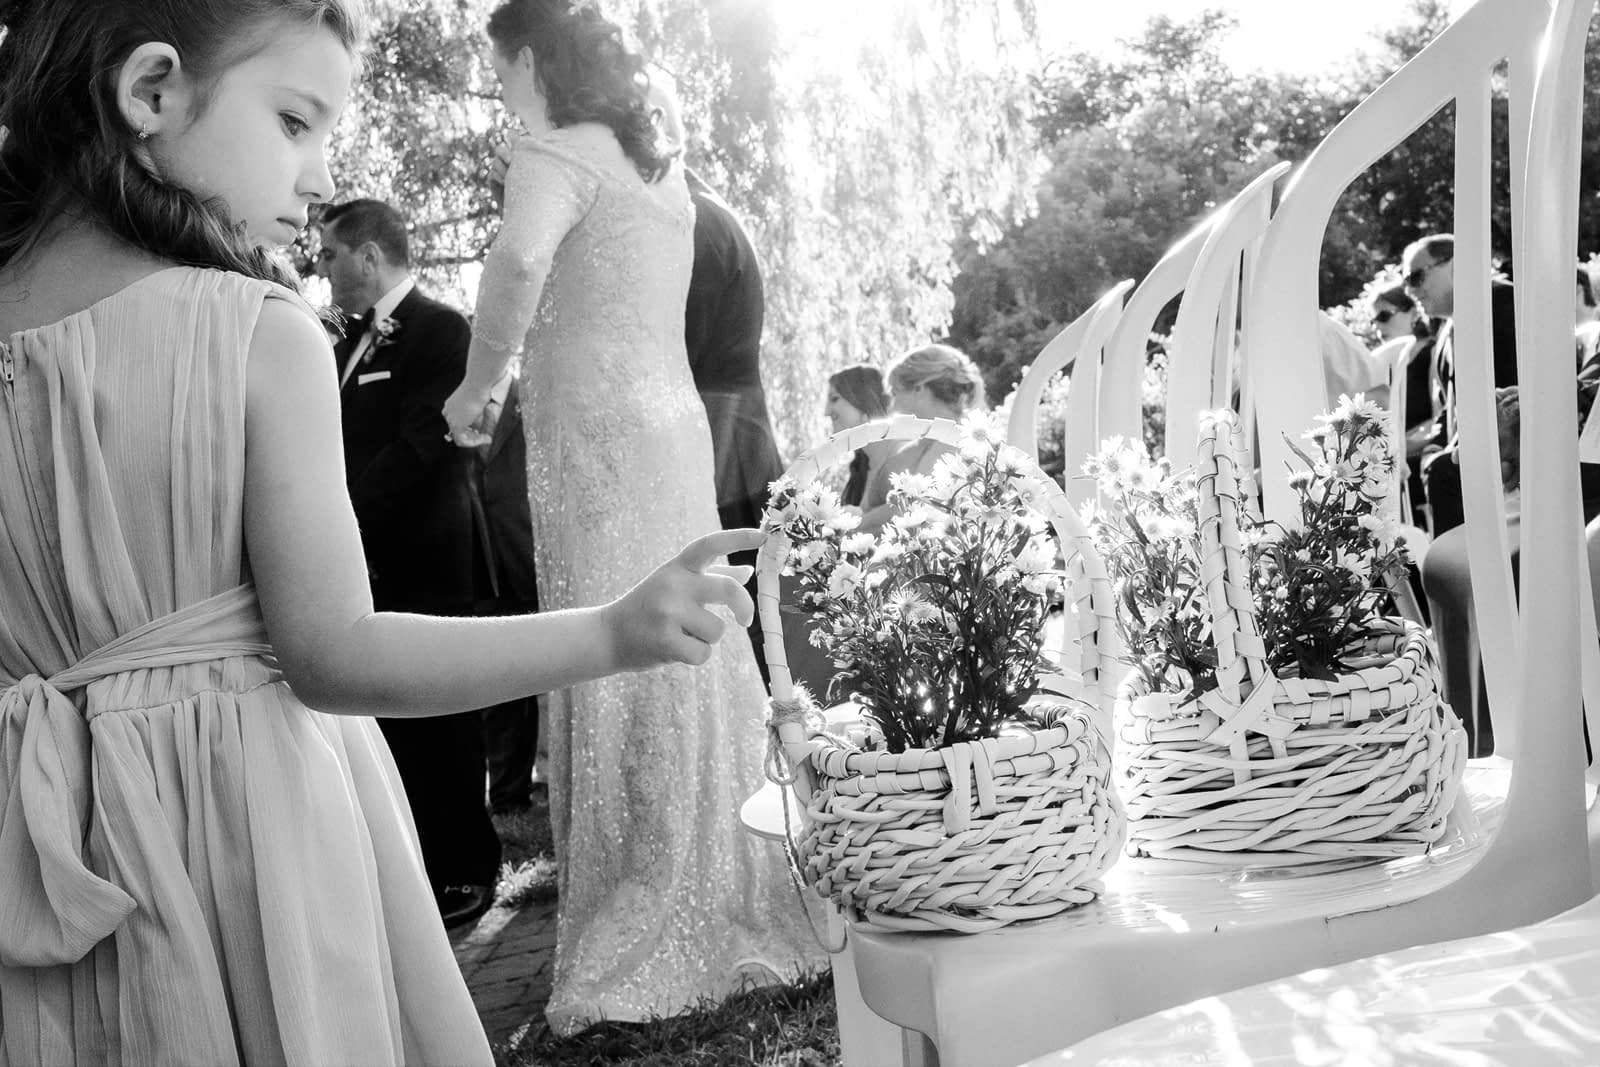 Flower girl curiously touching a flower basket